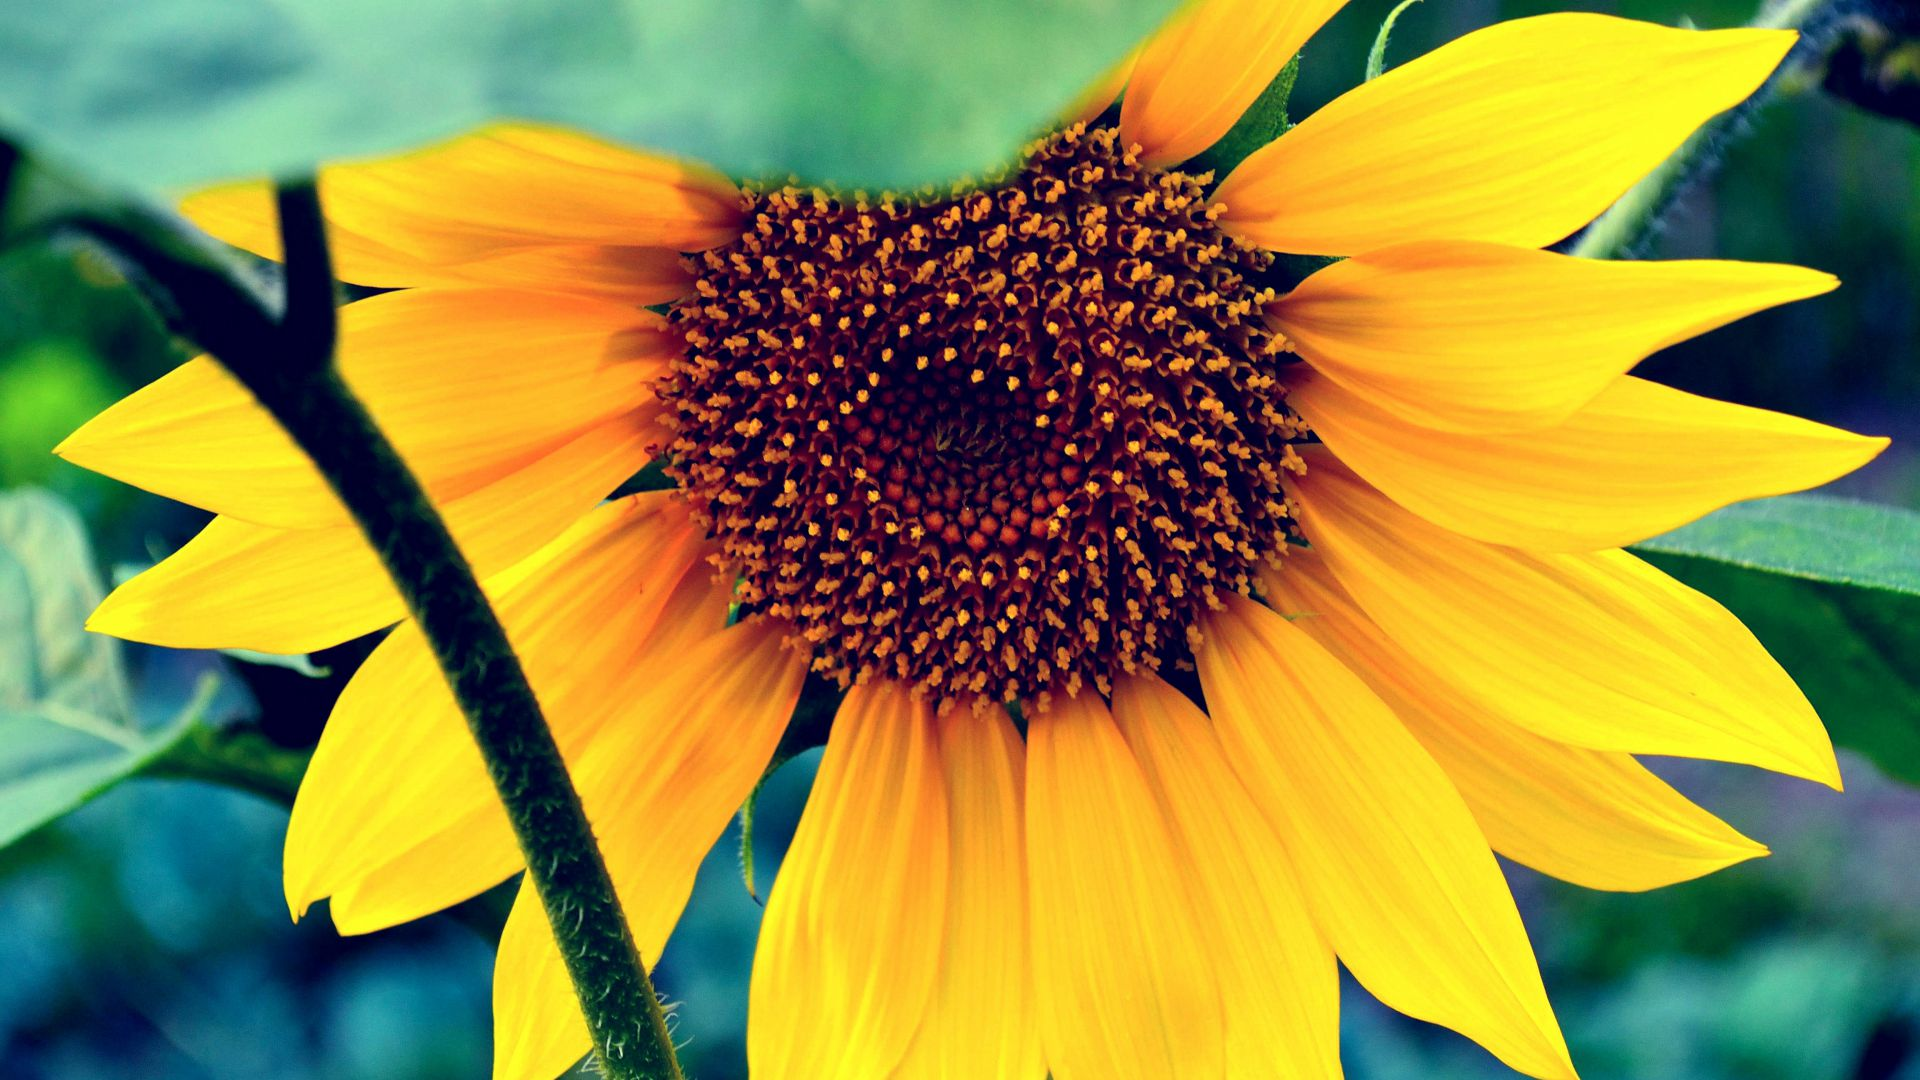 Sunflower, HD, 4k wallpaper, macro, flowers, yellow (horizontal)